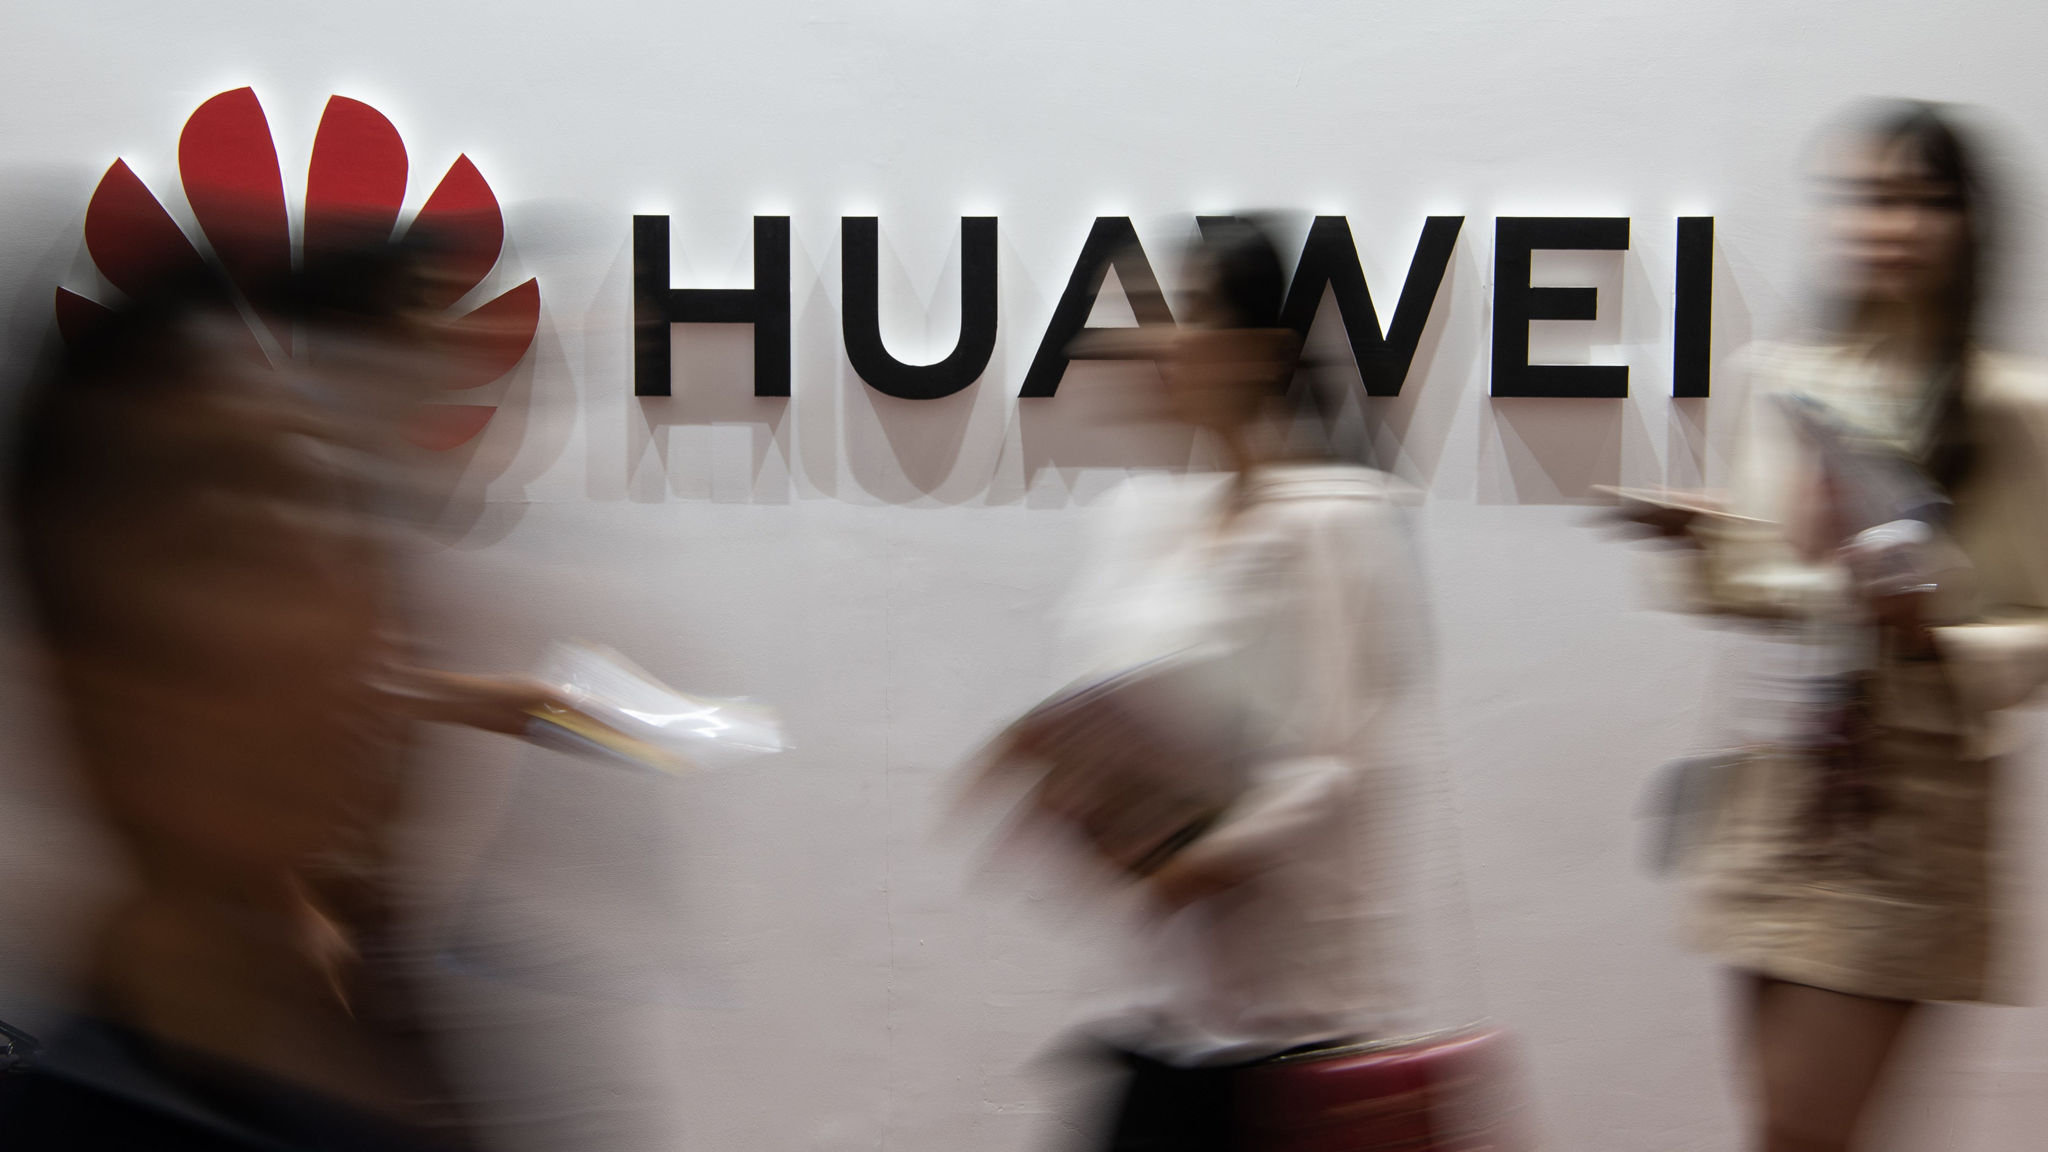 Huawei's dominance in 5G should be challenged